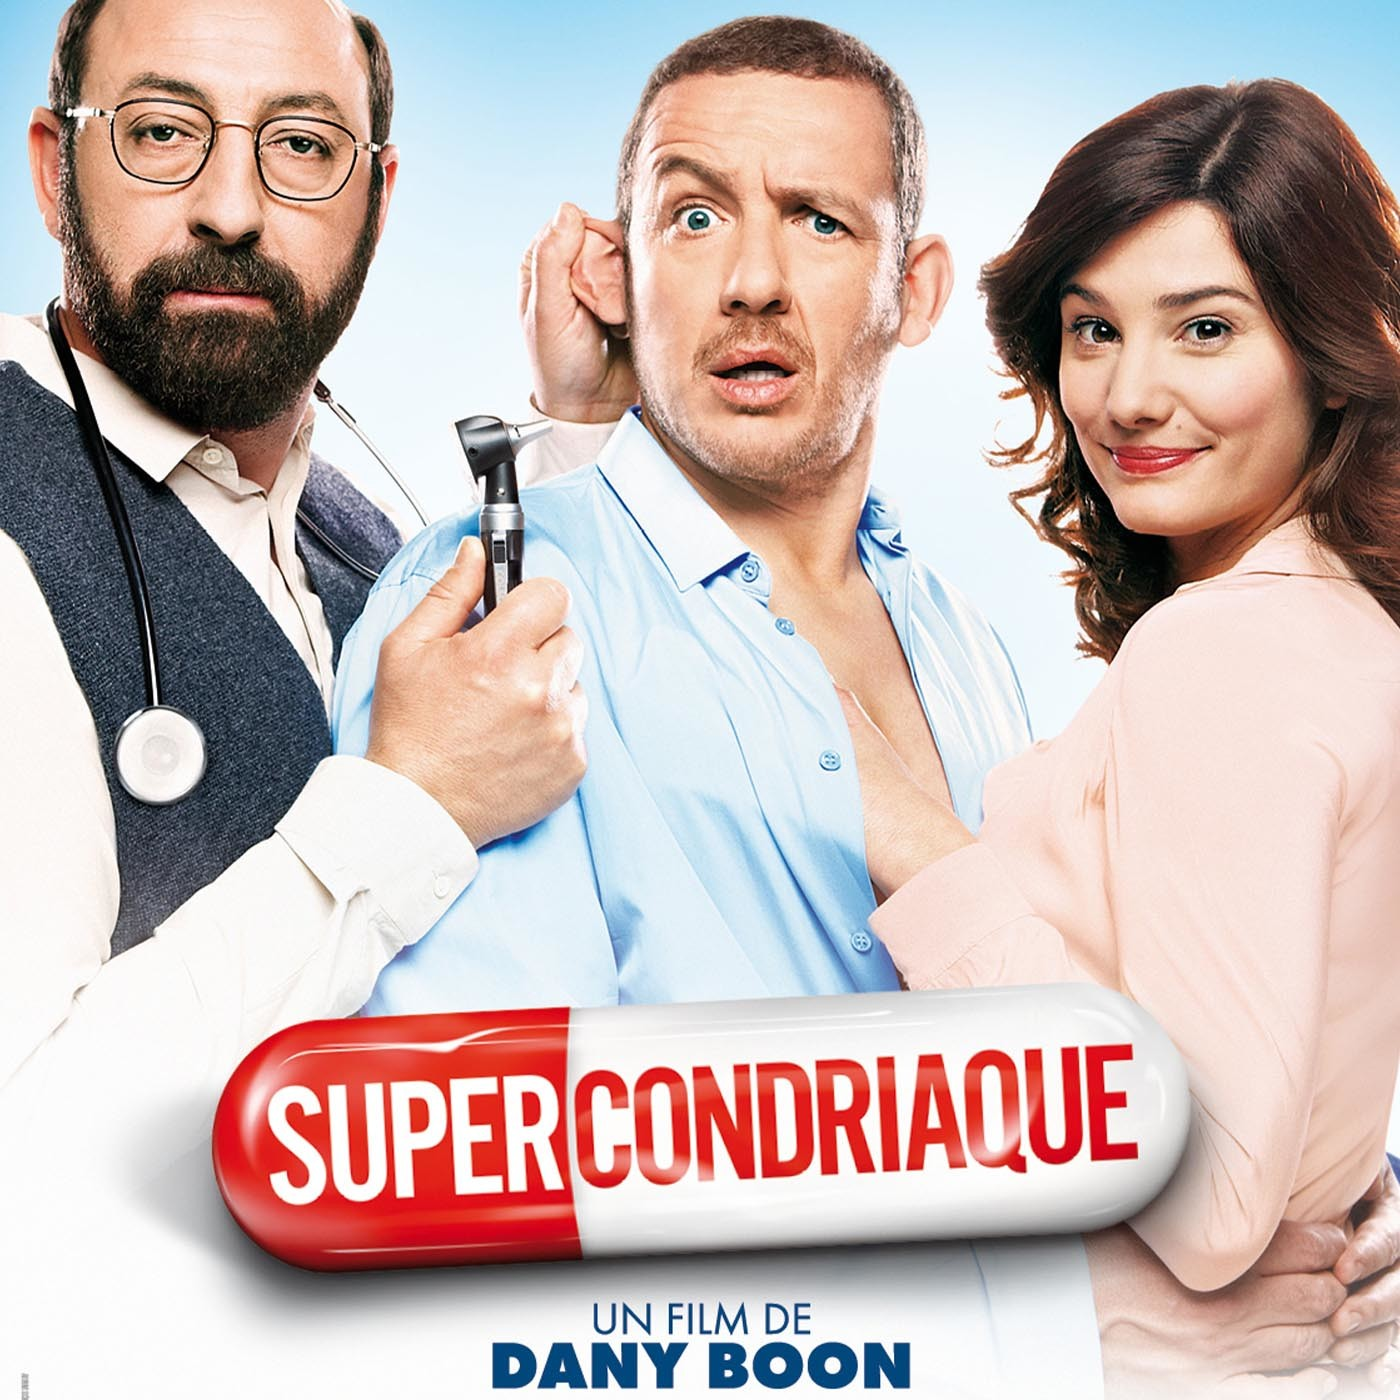 Supercondriaque : Le virus Dany Boon